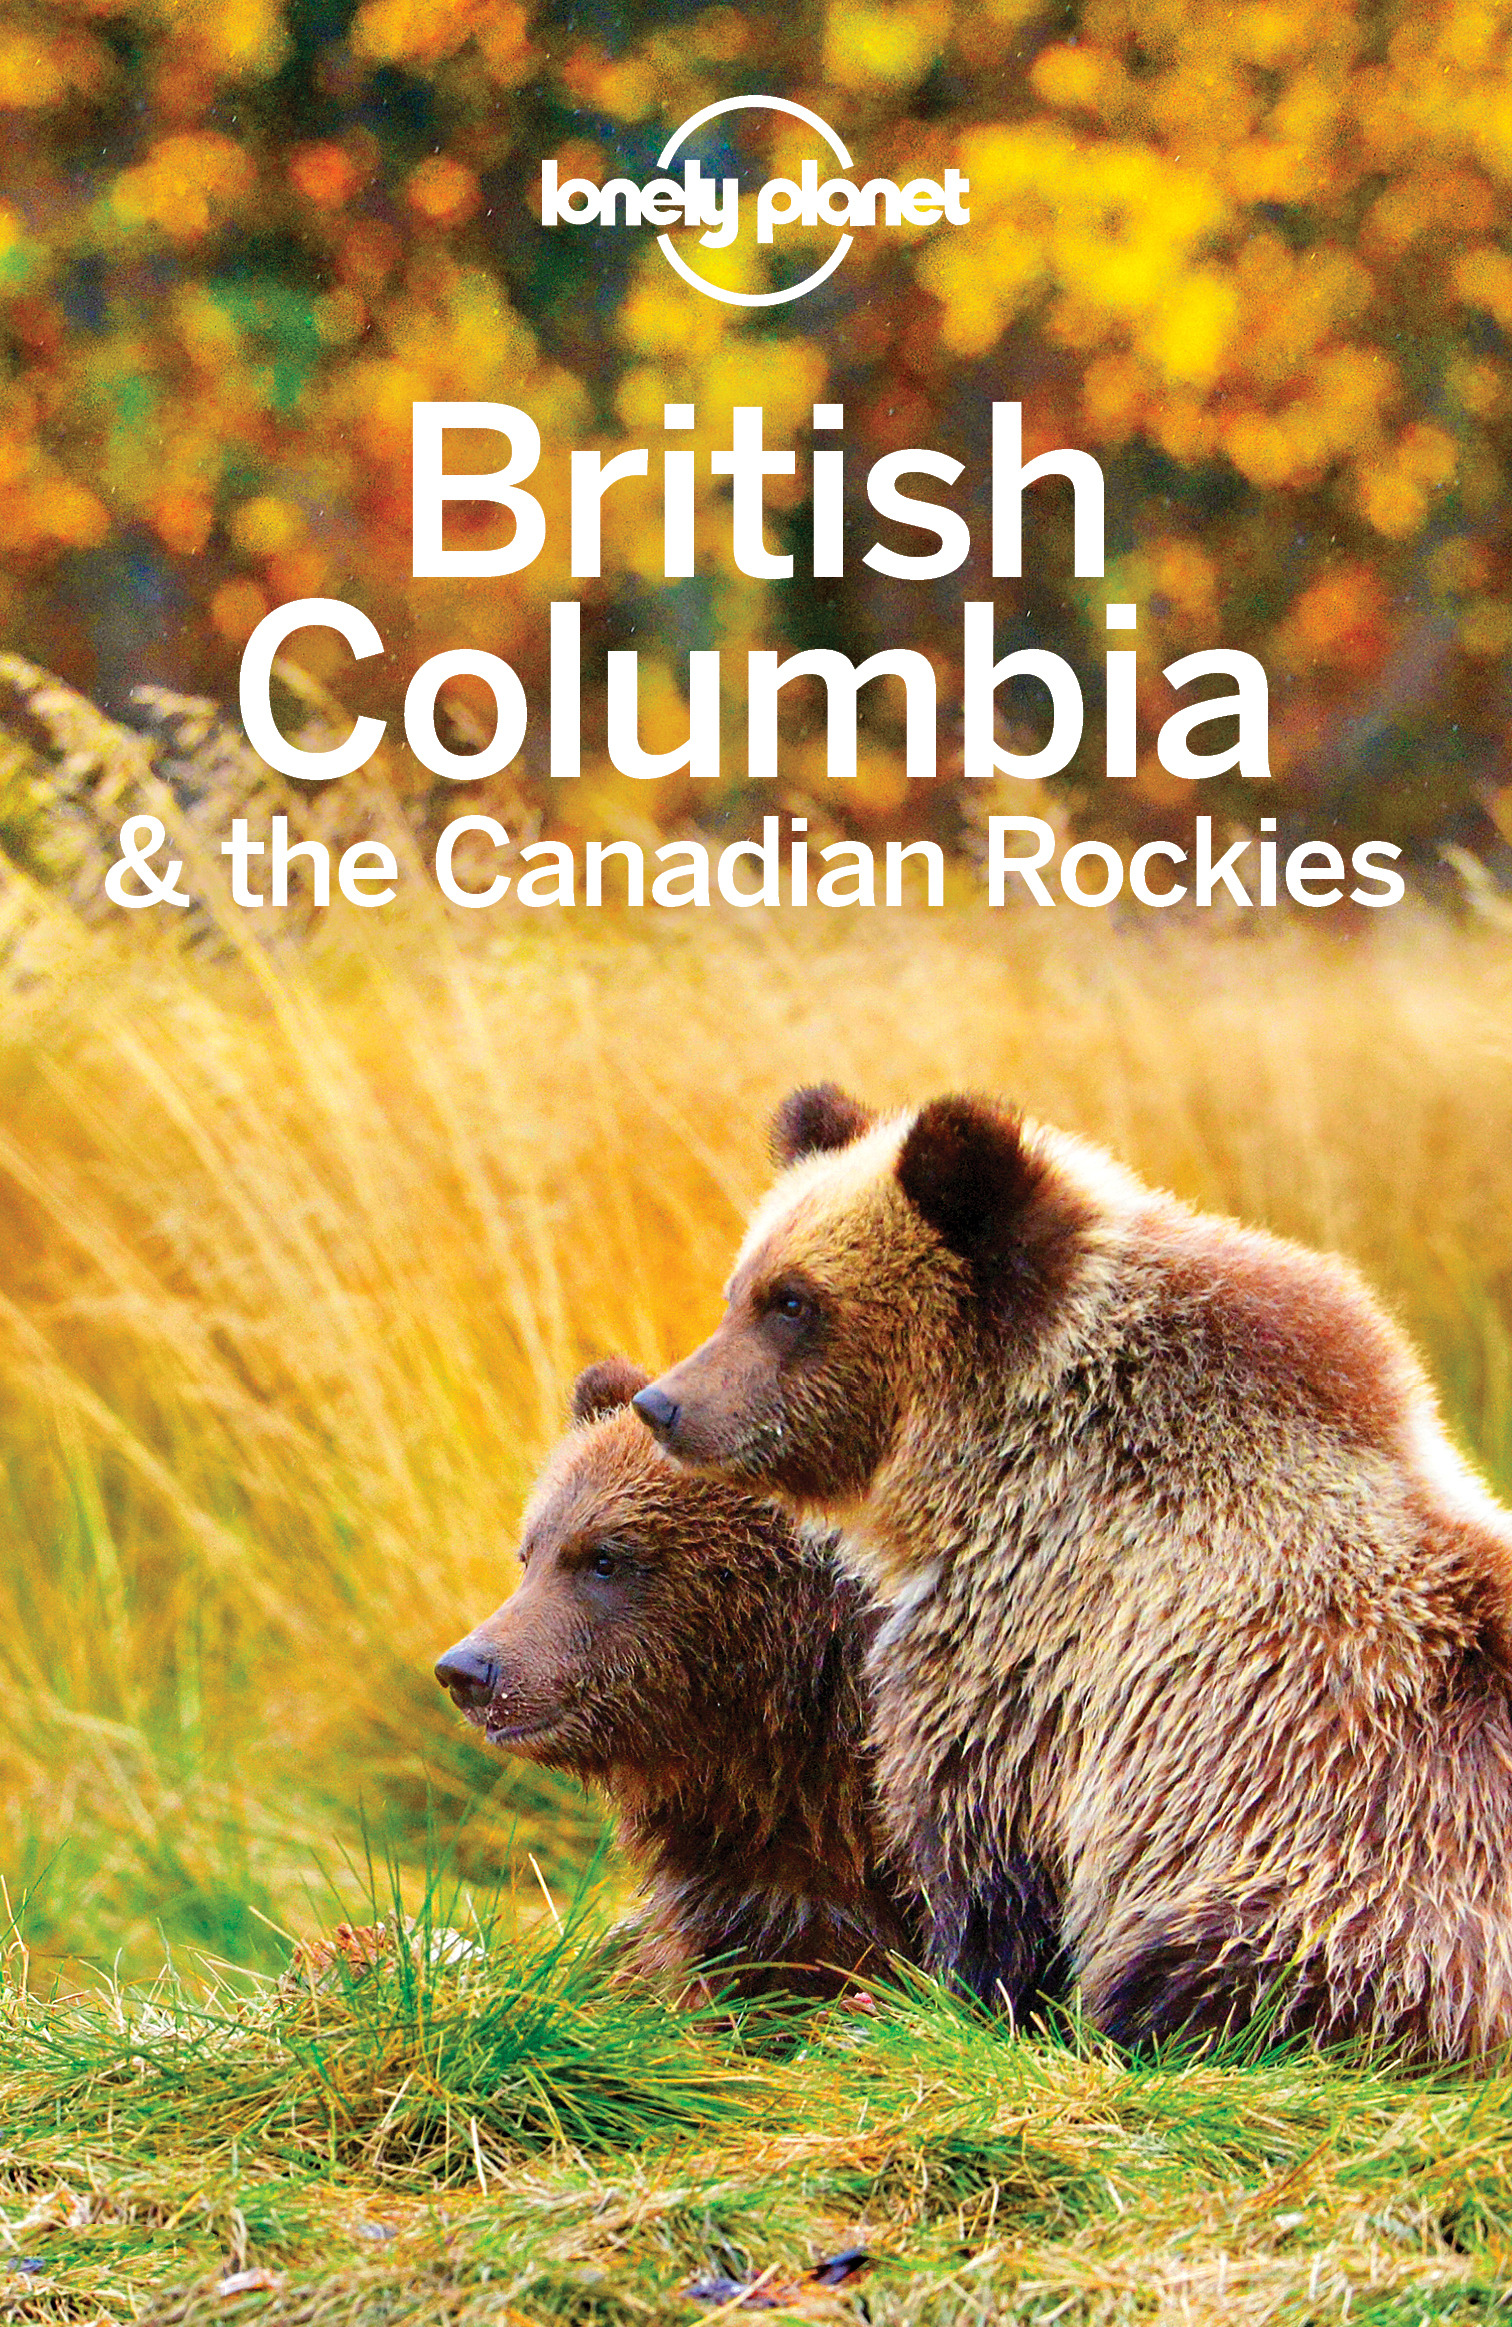 Berkmoes, Ryan Ver - Lonely Planet British Columbia & the Canadian Rockies, e-kirja